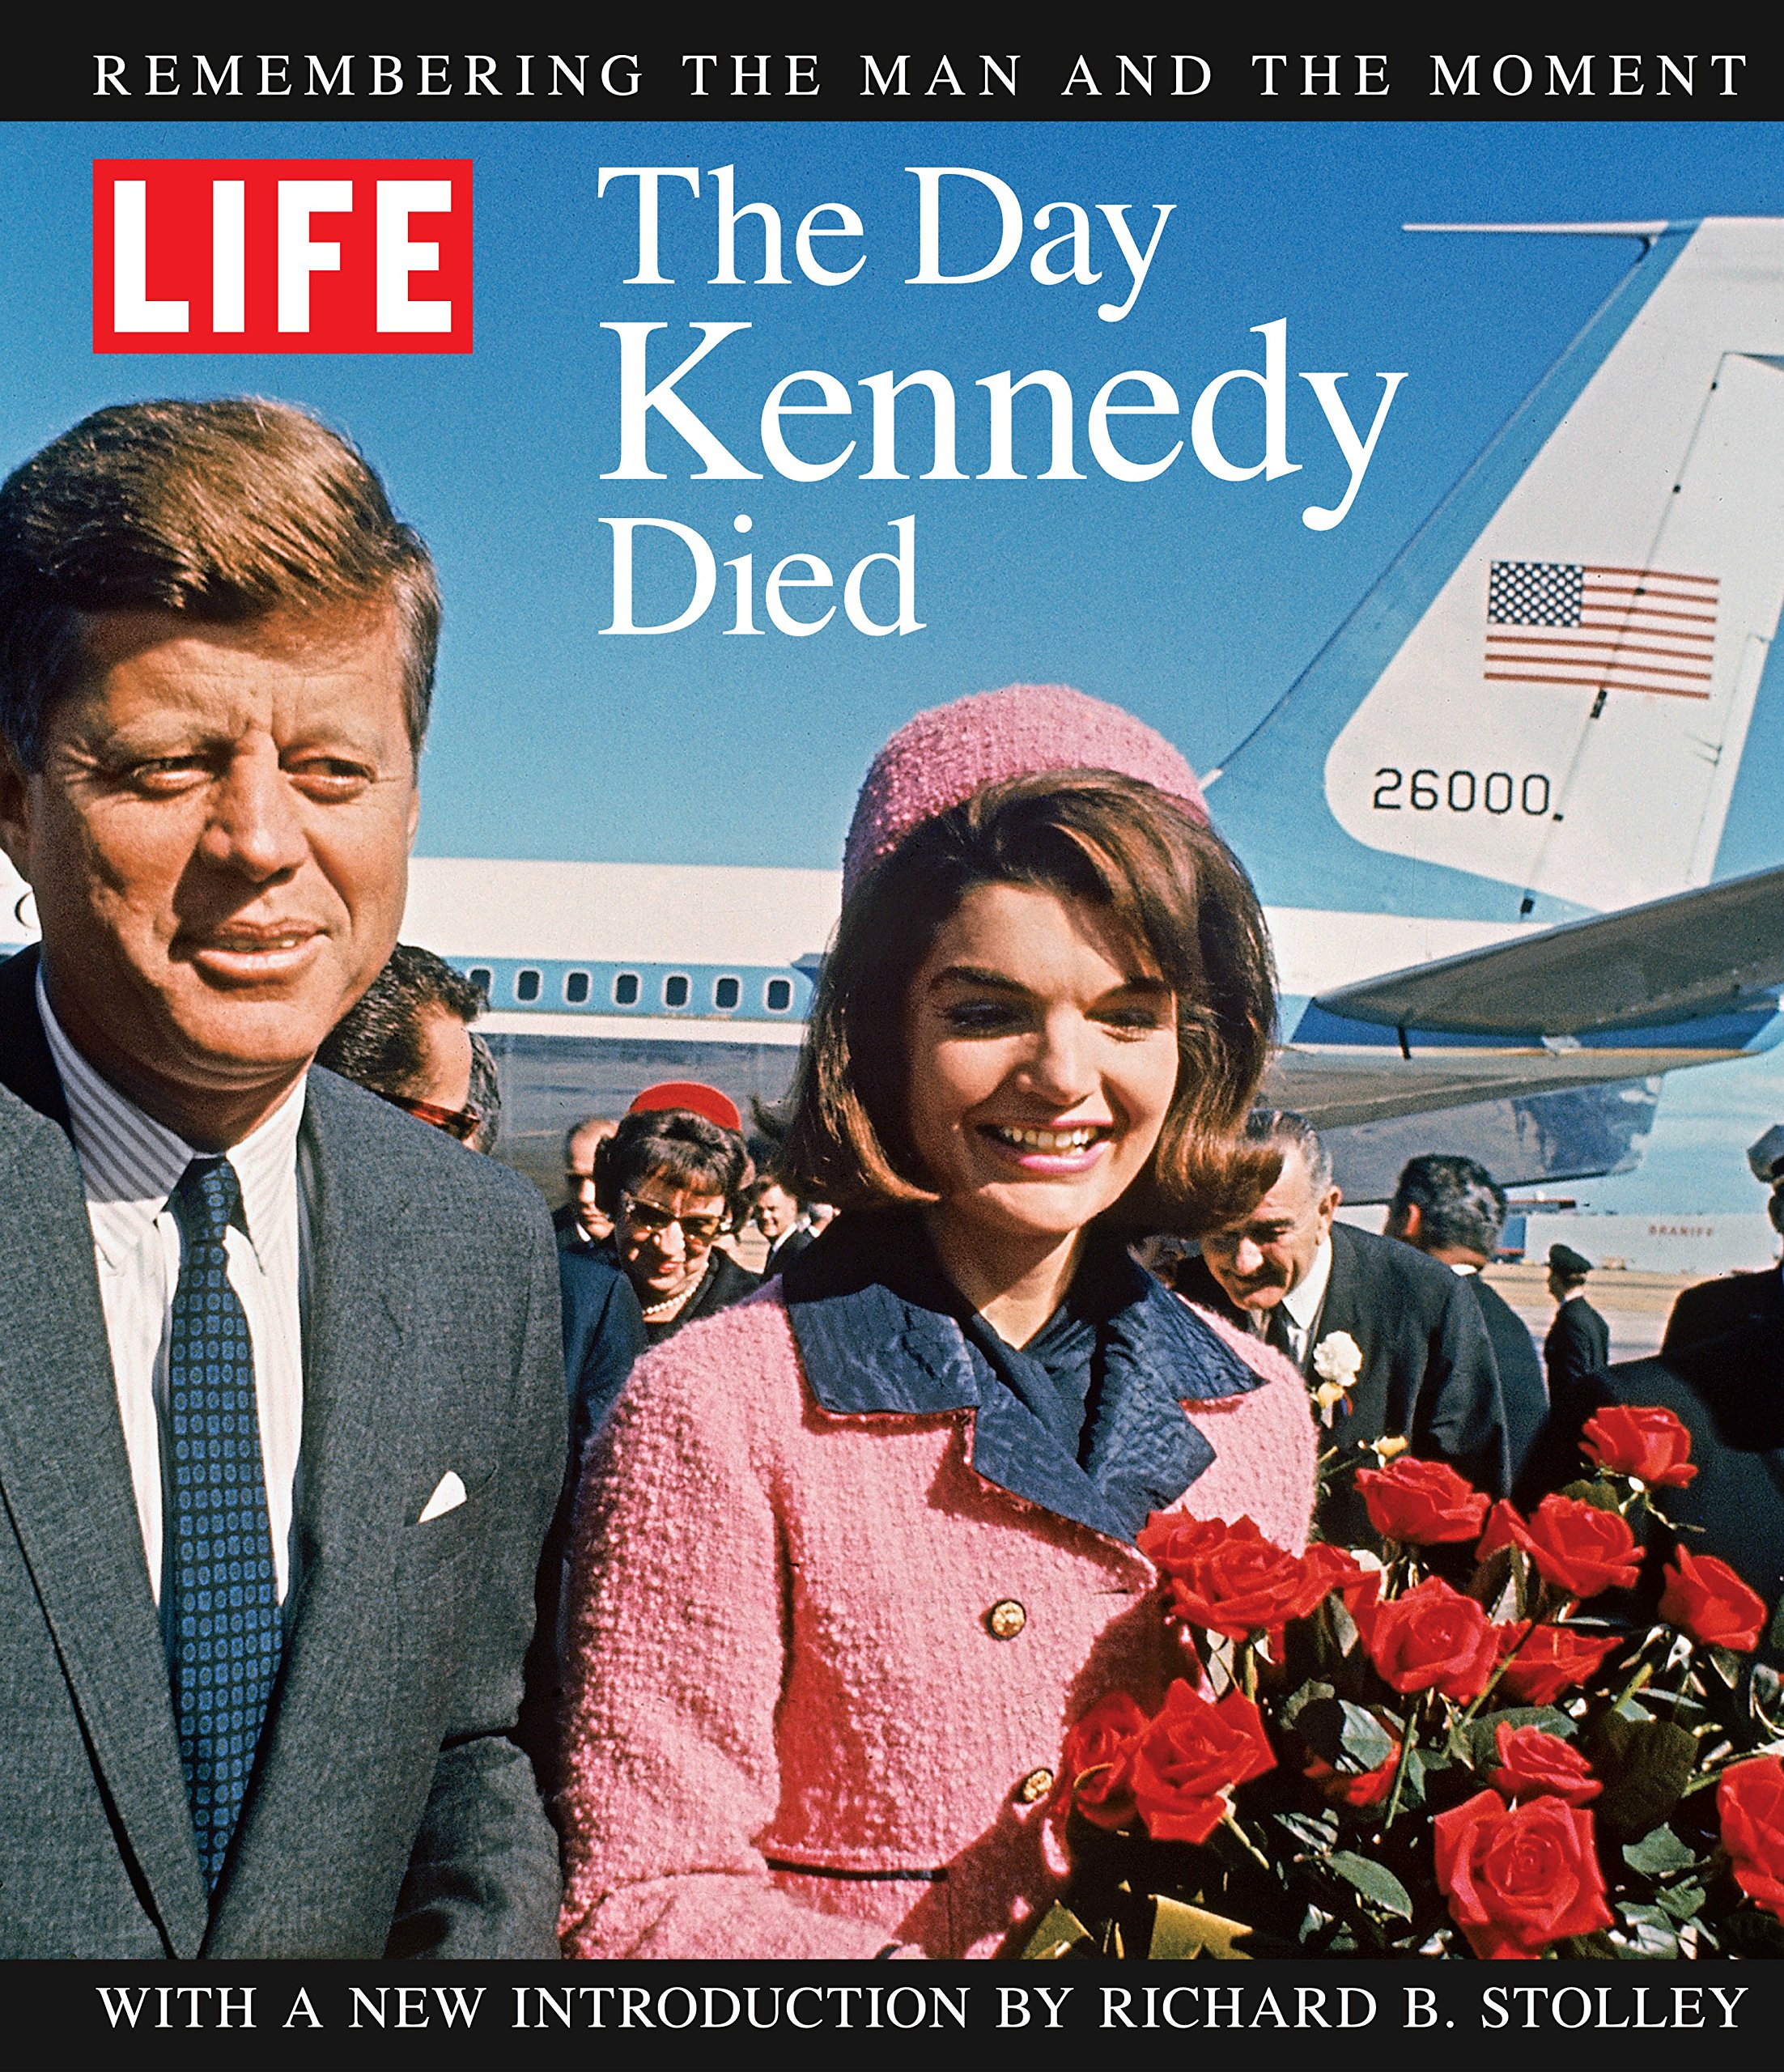 Amazon.com: LIFE The Day Kennedy Died (Life (Life Books ...